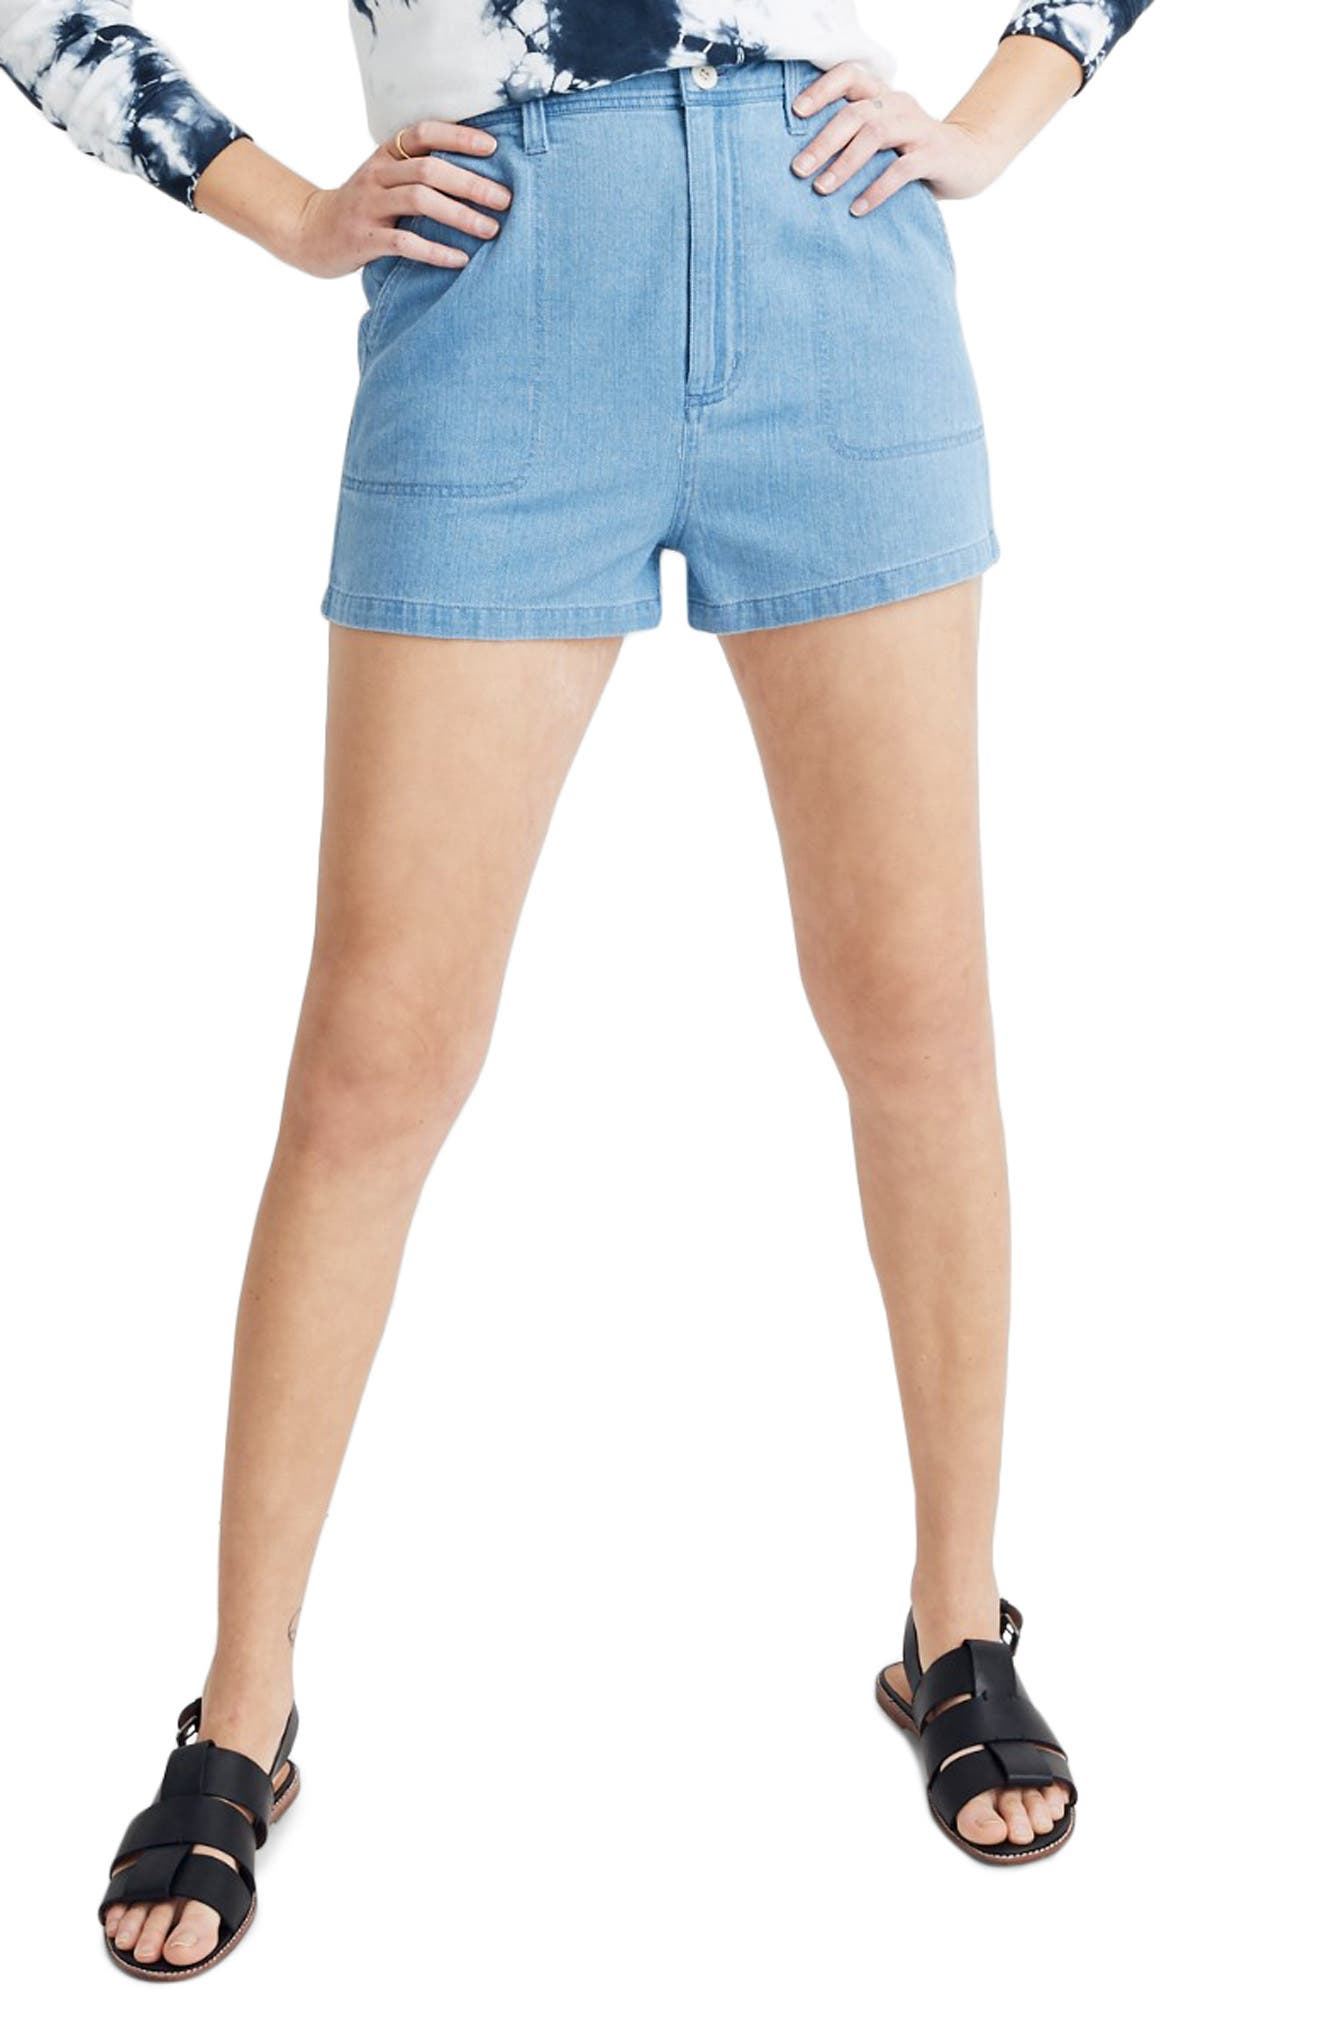 Vintage Shorts, Culottes,  Capris History Womens Madewell Denim Camp Shorts $29.70 AT vintagedancer.com